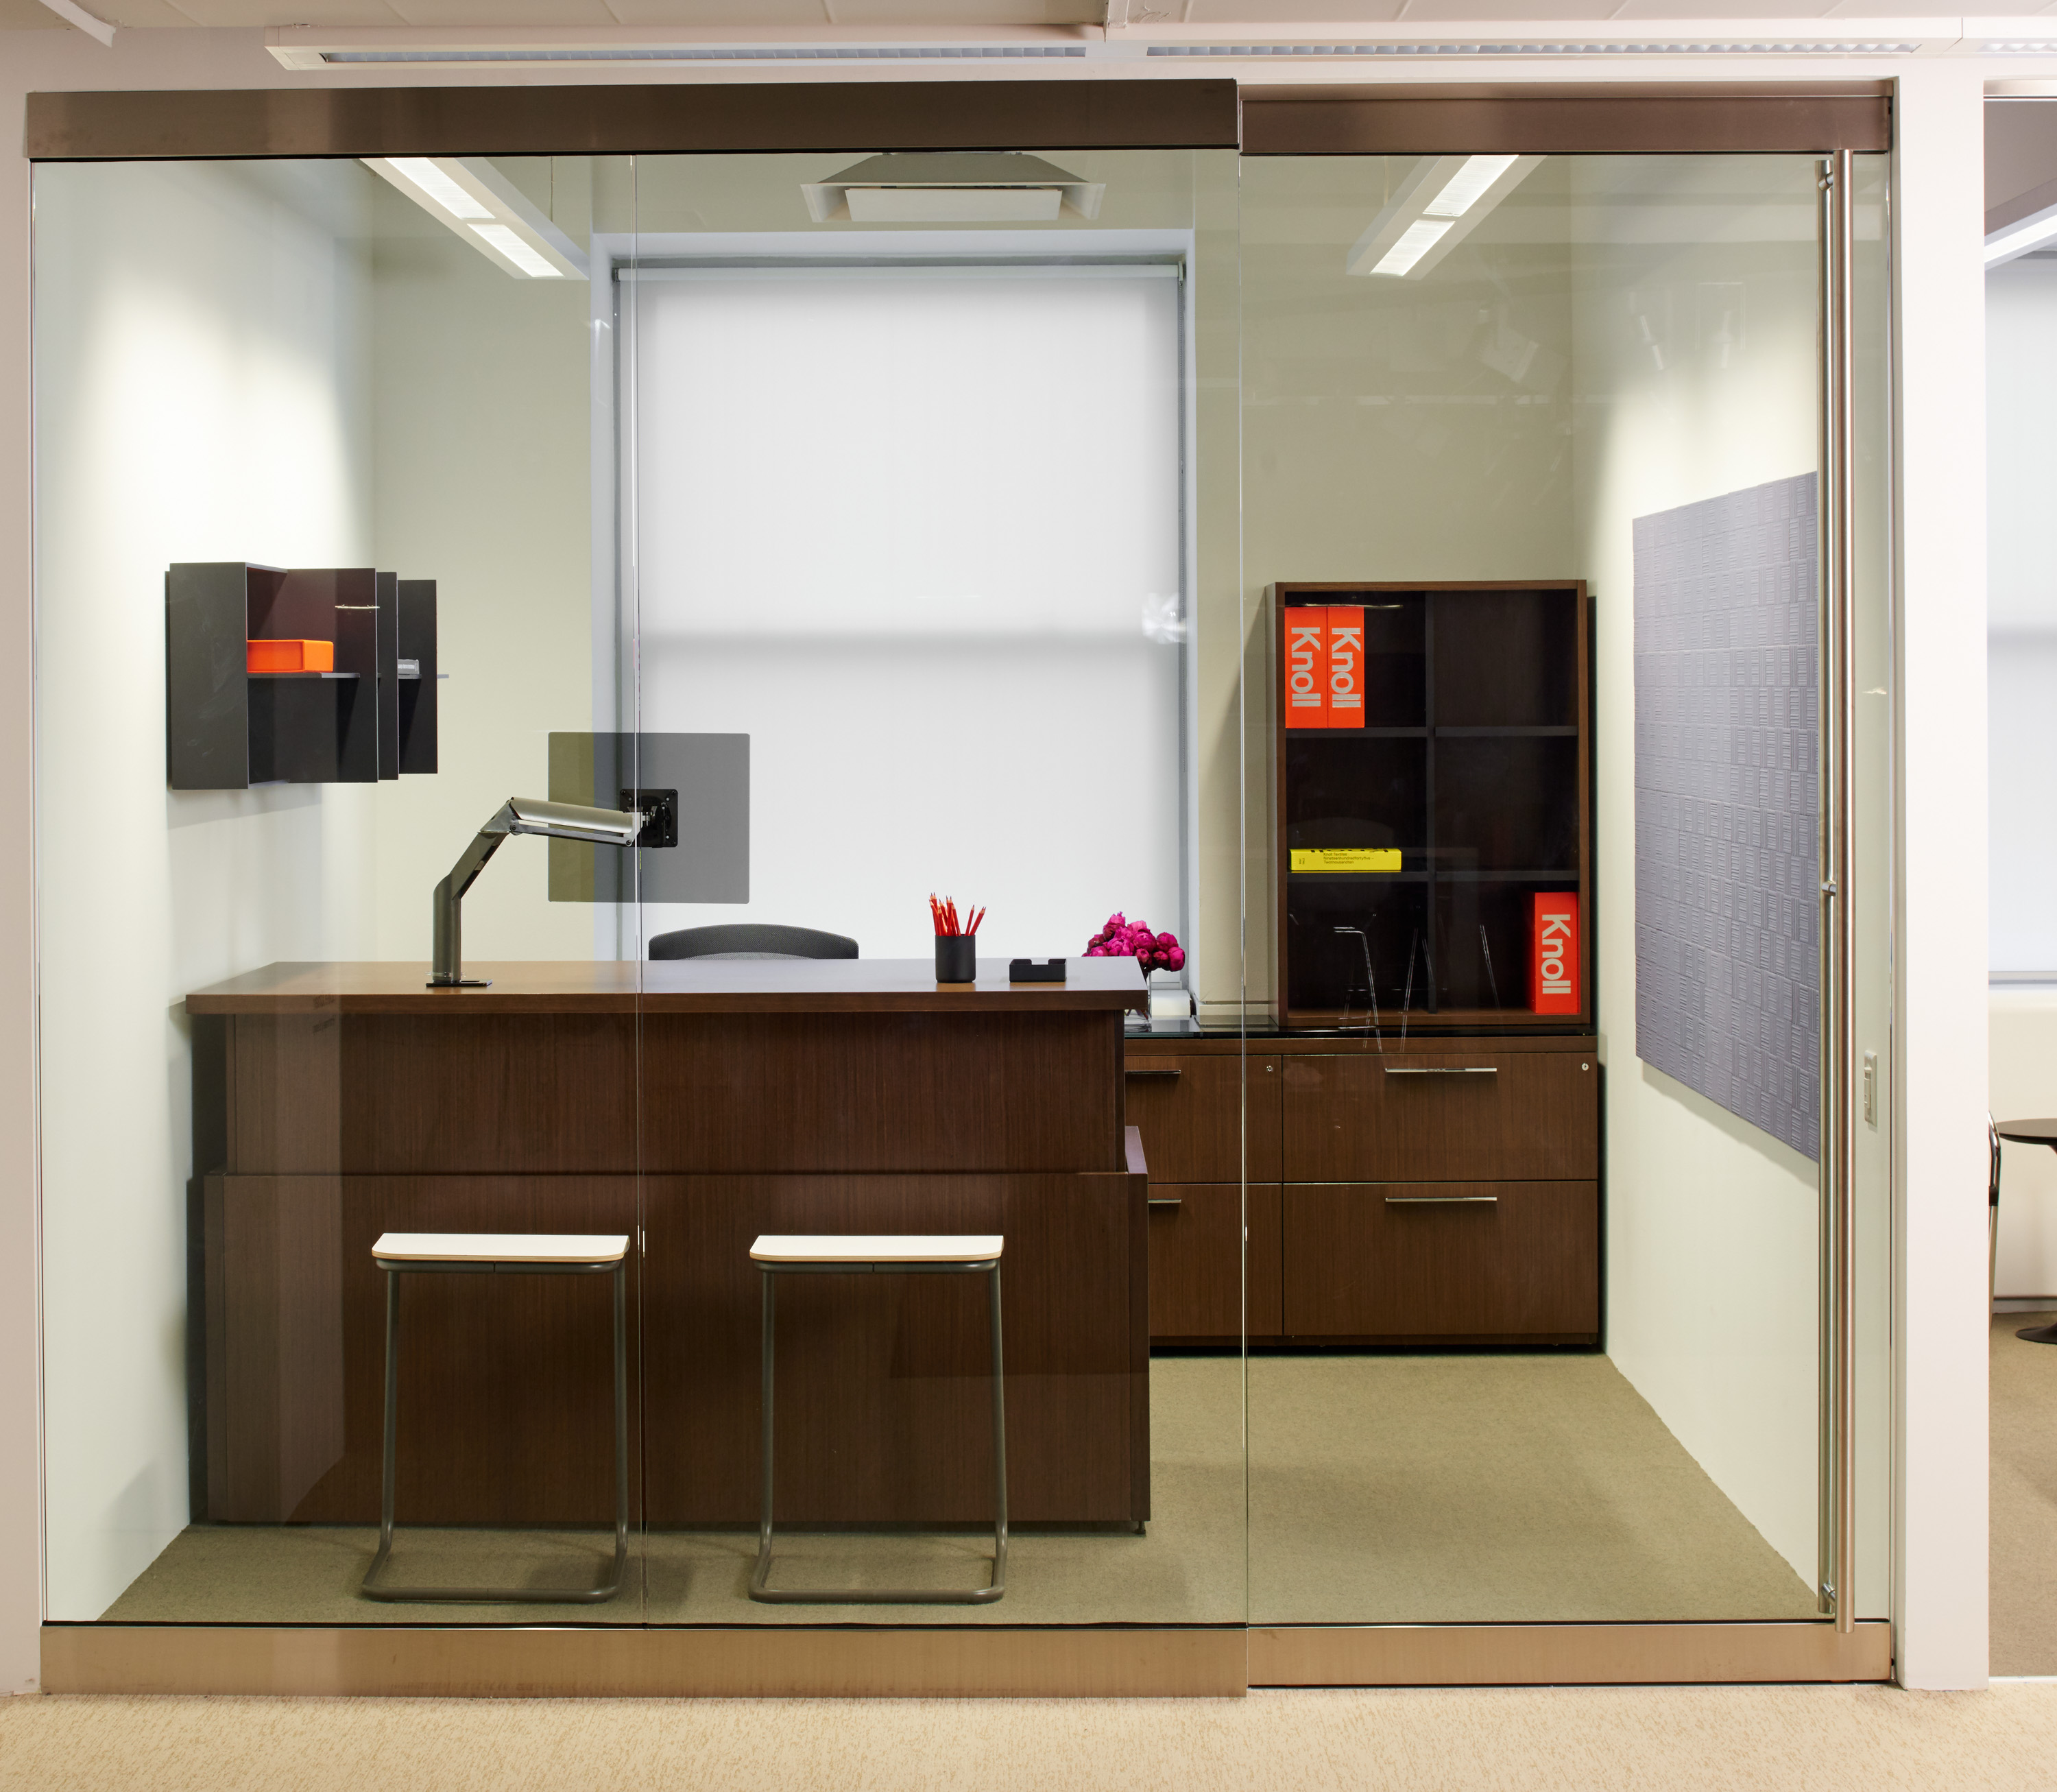 Knoll Home Design Shop: Reff Profiles™ Height-Adjustable Desks And Peninsulas